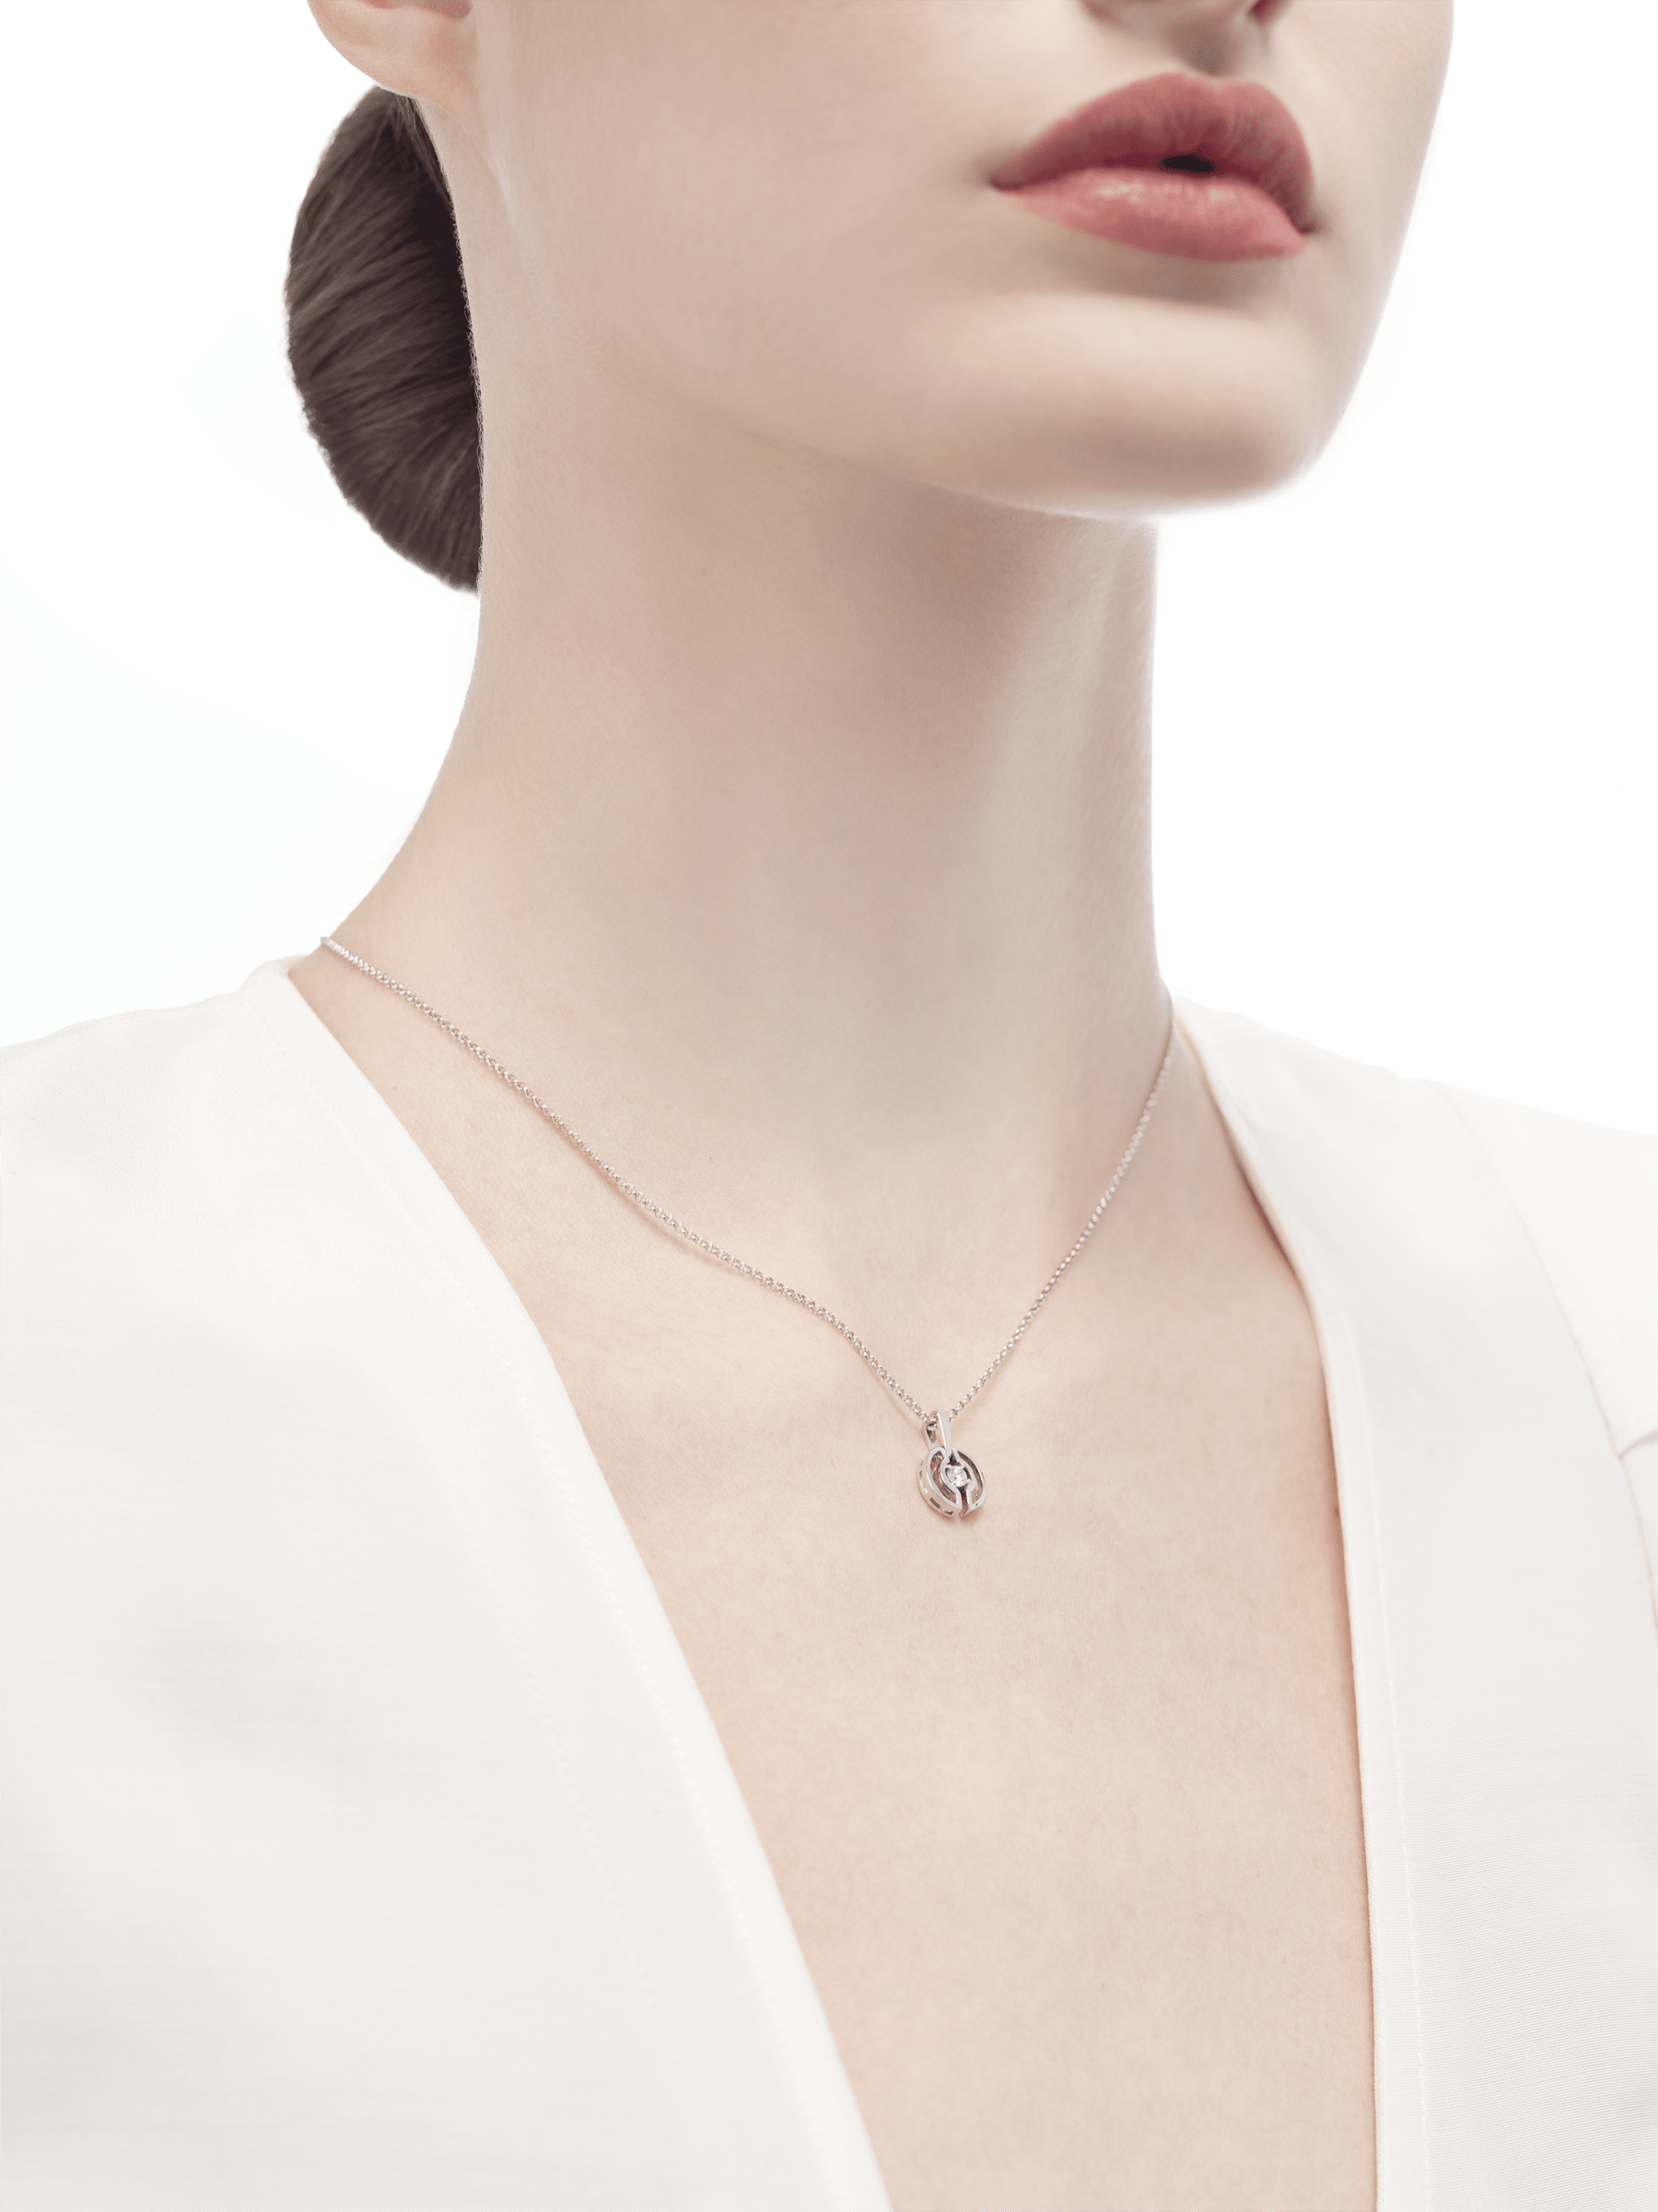 Parentesi necklace with 18 kt white gold chain and pendant, set with a central diamond. 354311 image 5